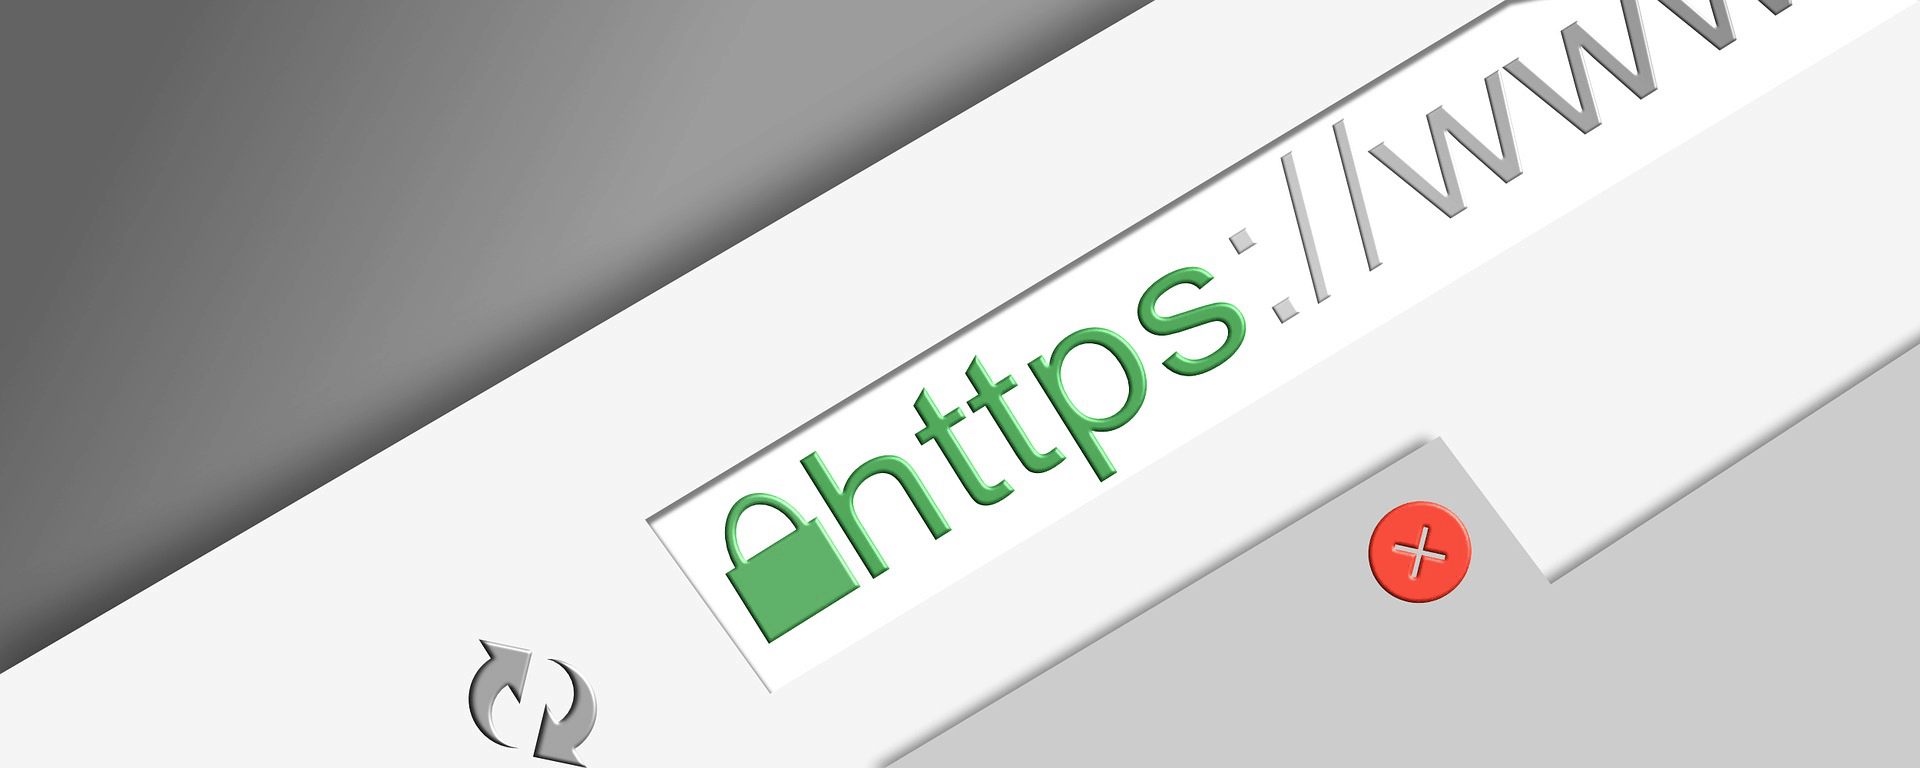 The SSL icon in the browser bar